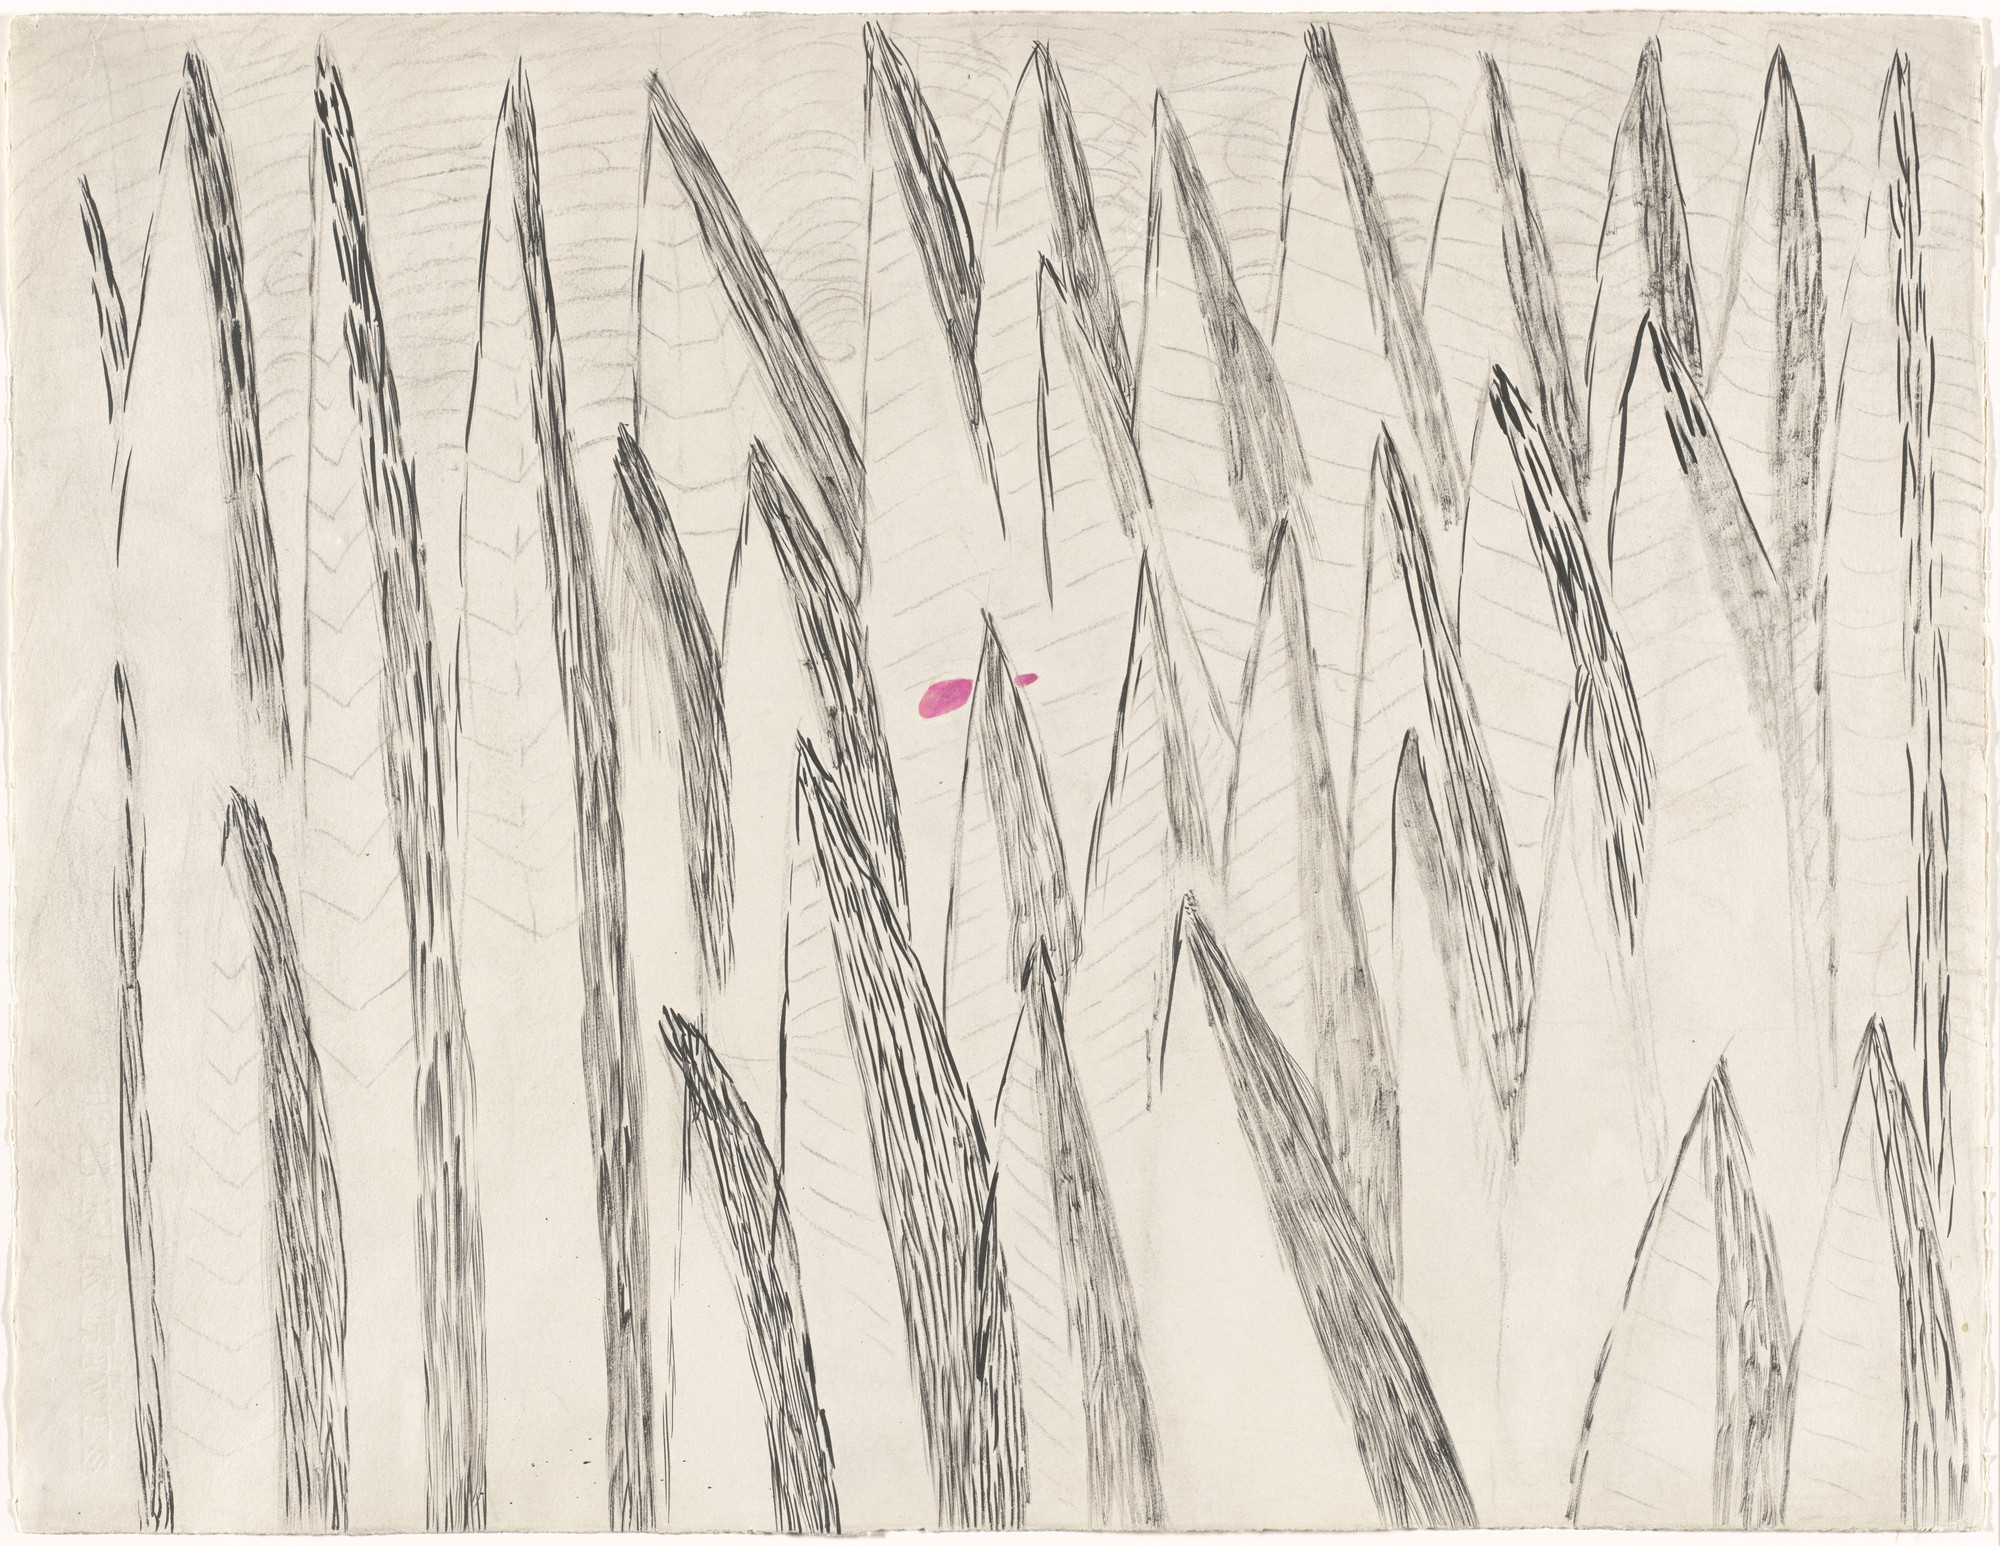 Louise Bourgeois. Untitled. 1949